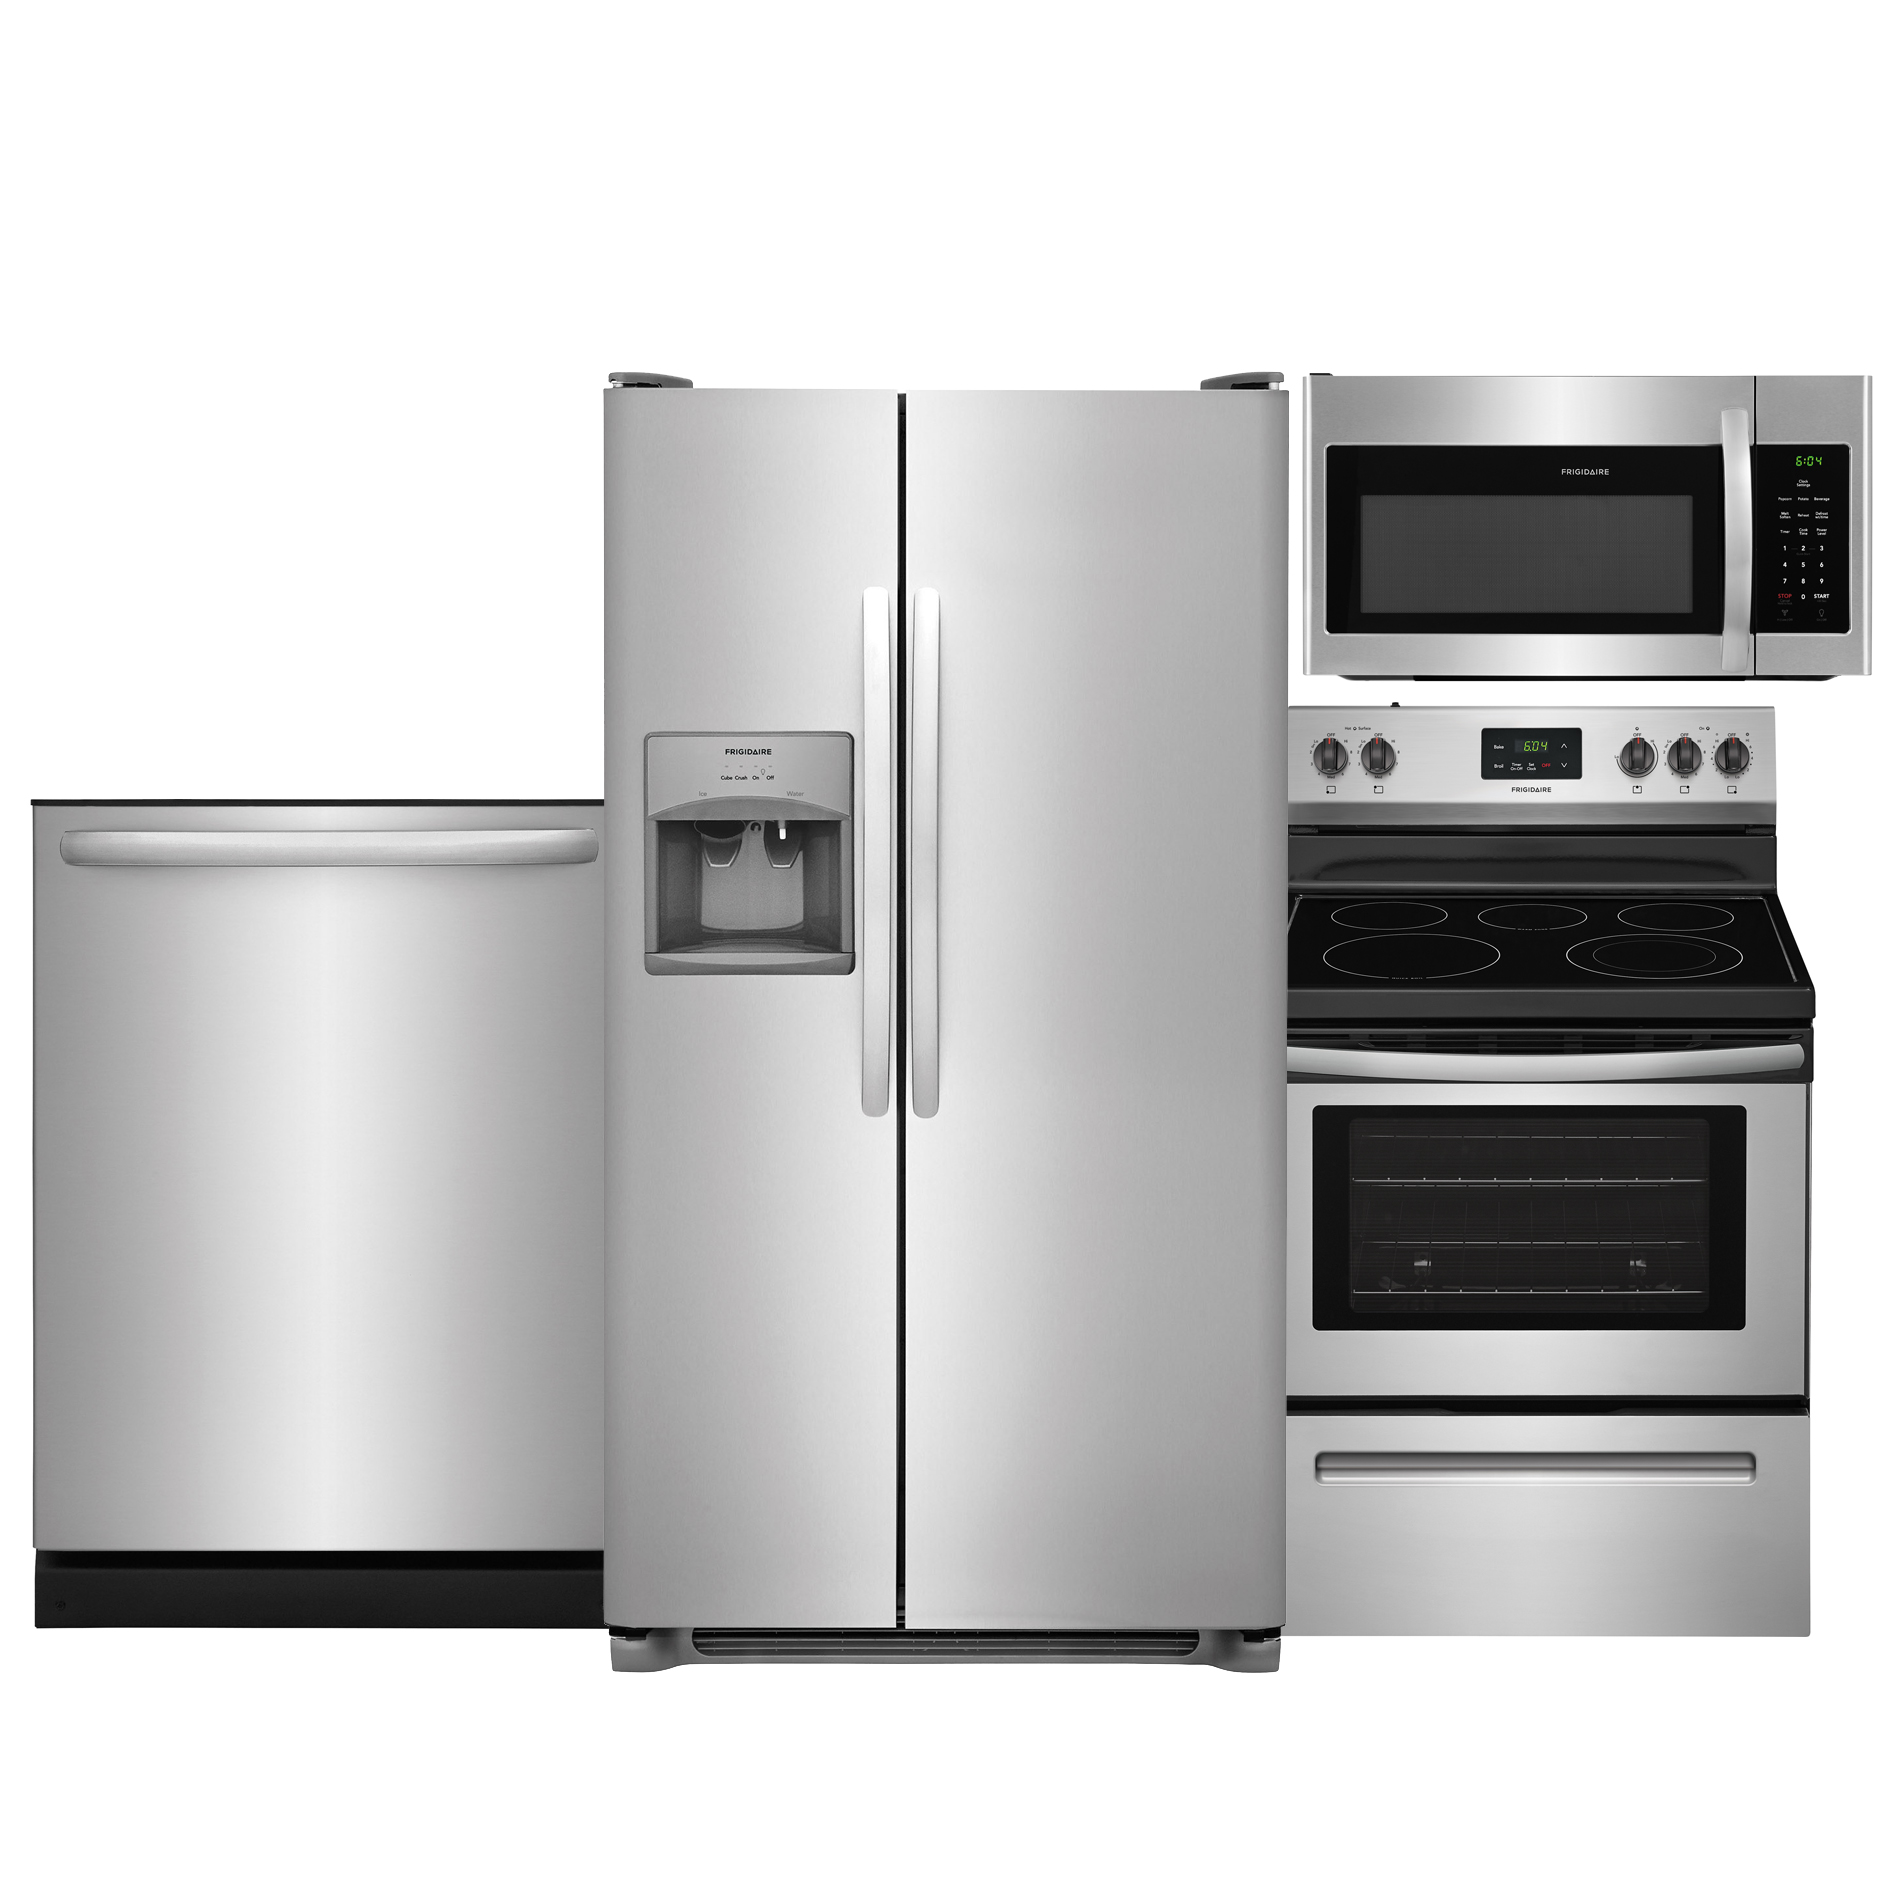 sears kitchen marble floor shop appliance packages with suites at frigidaire 4 piece suite stainless steel